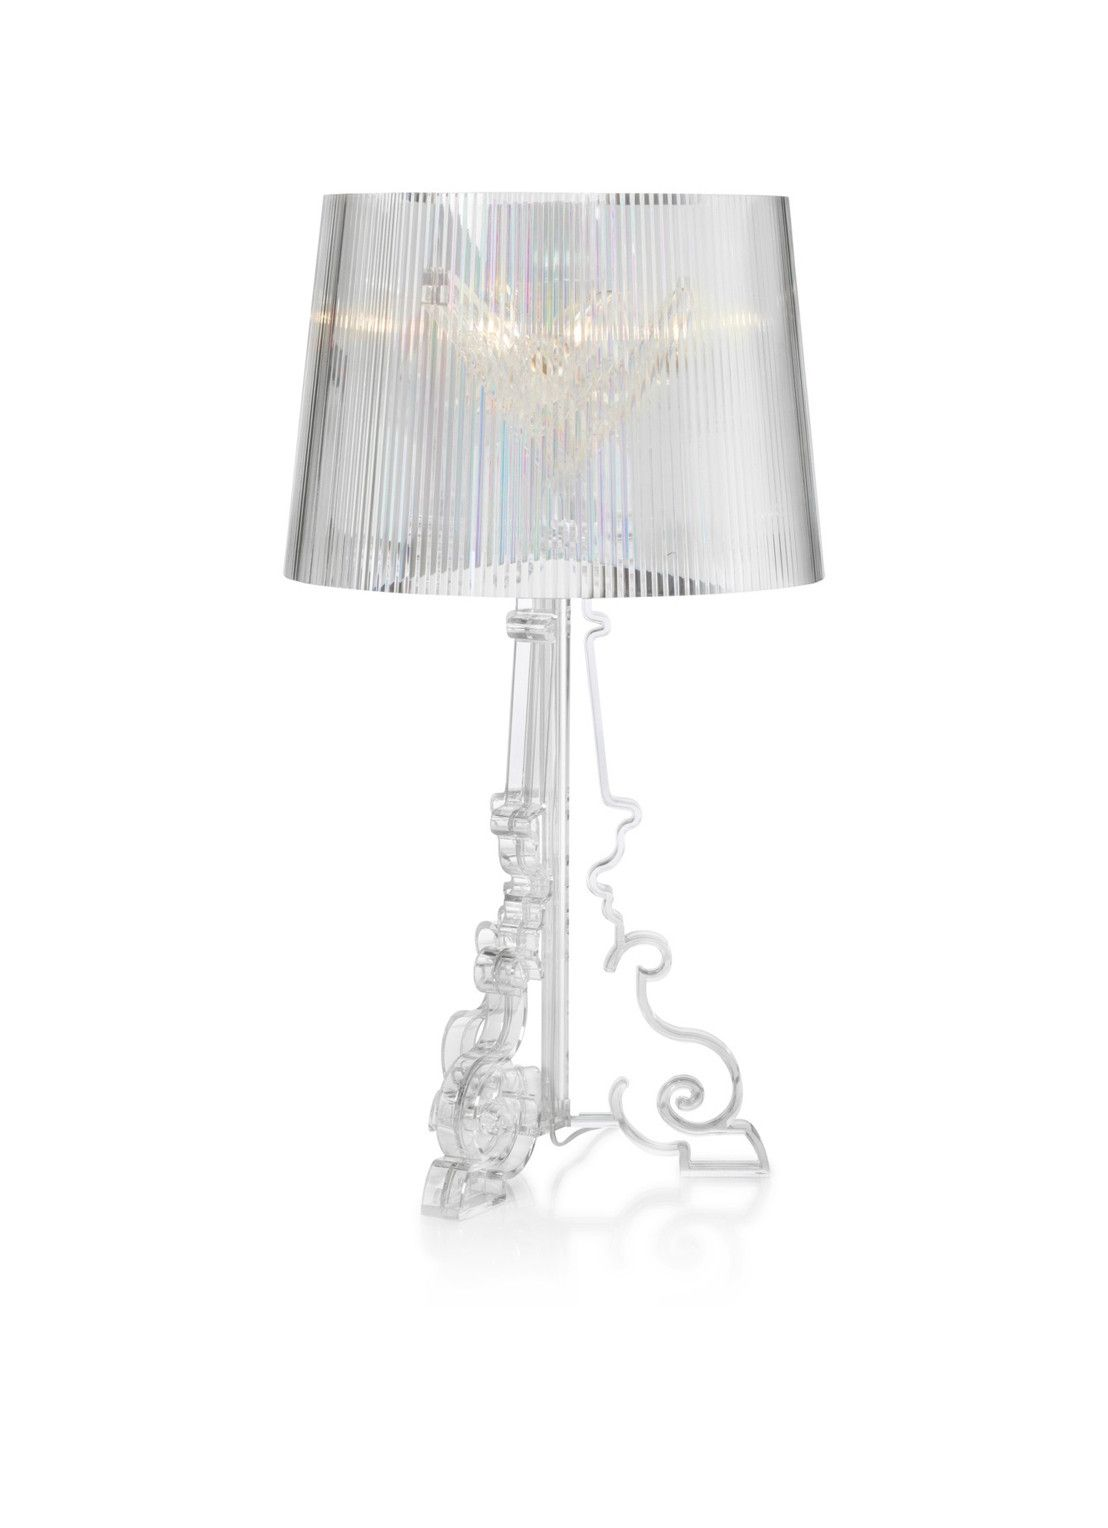 Design Lamp Bijenkorf Kartell Verlichting Table Lamp Home Decor En Lighting